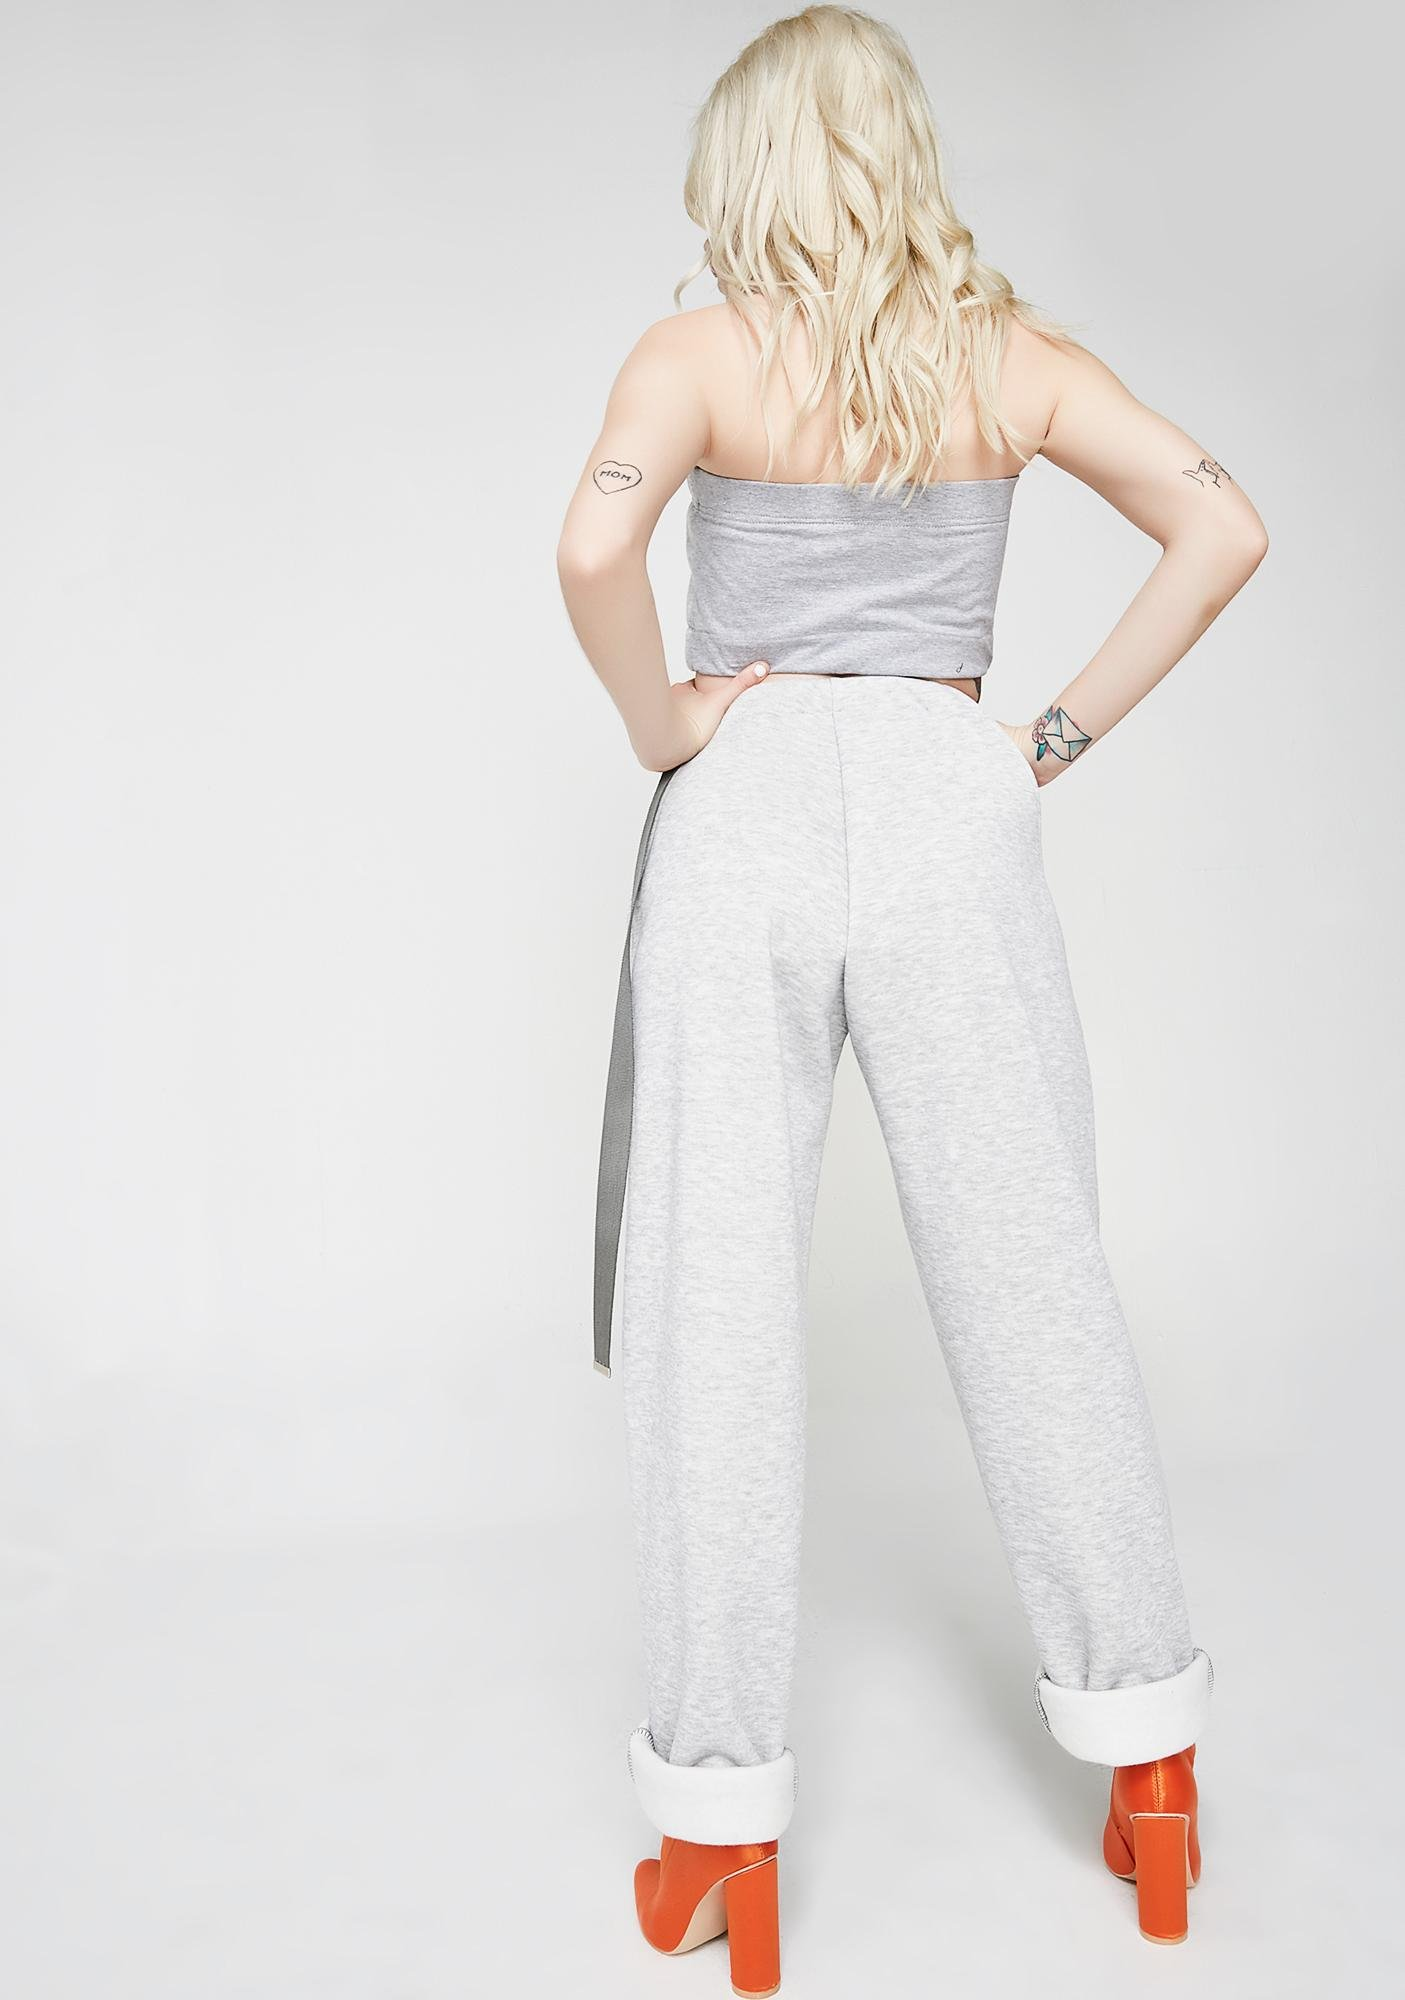 Riccetti Clothing Exposed Hip Pants